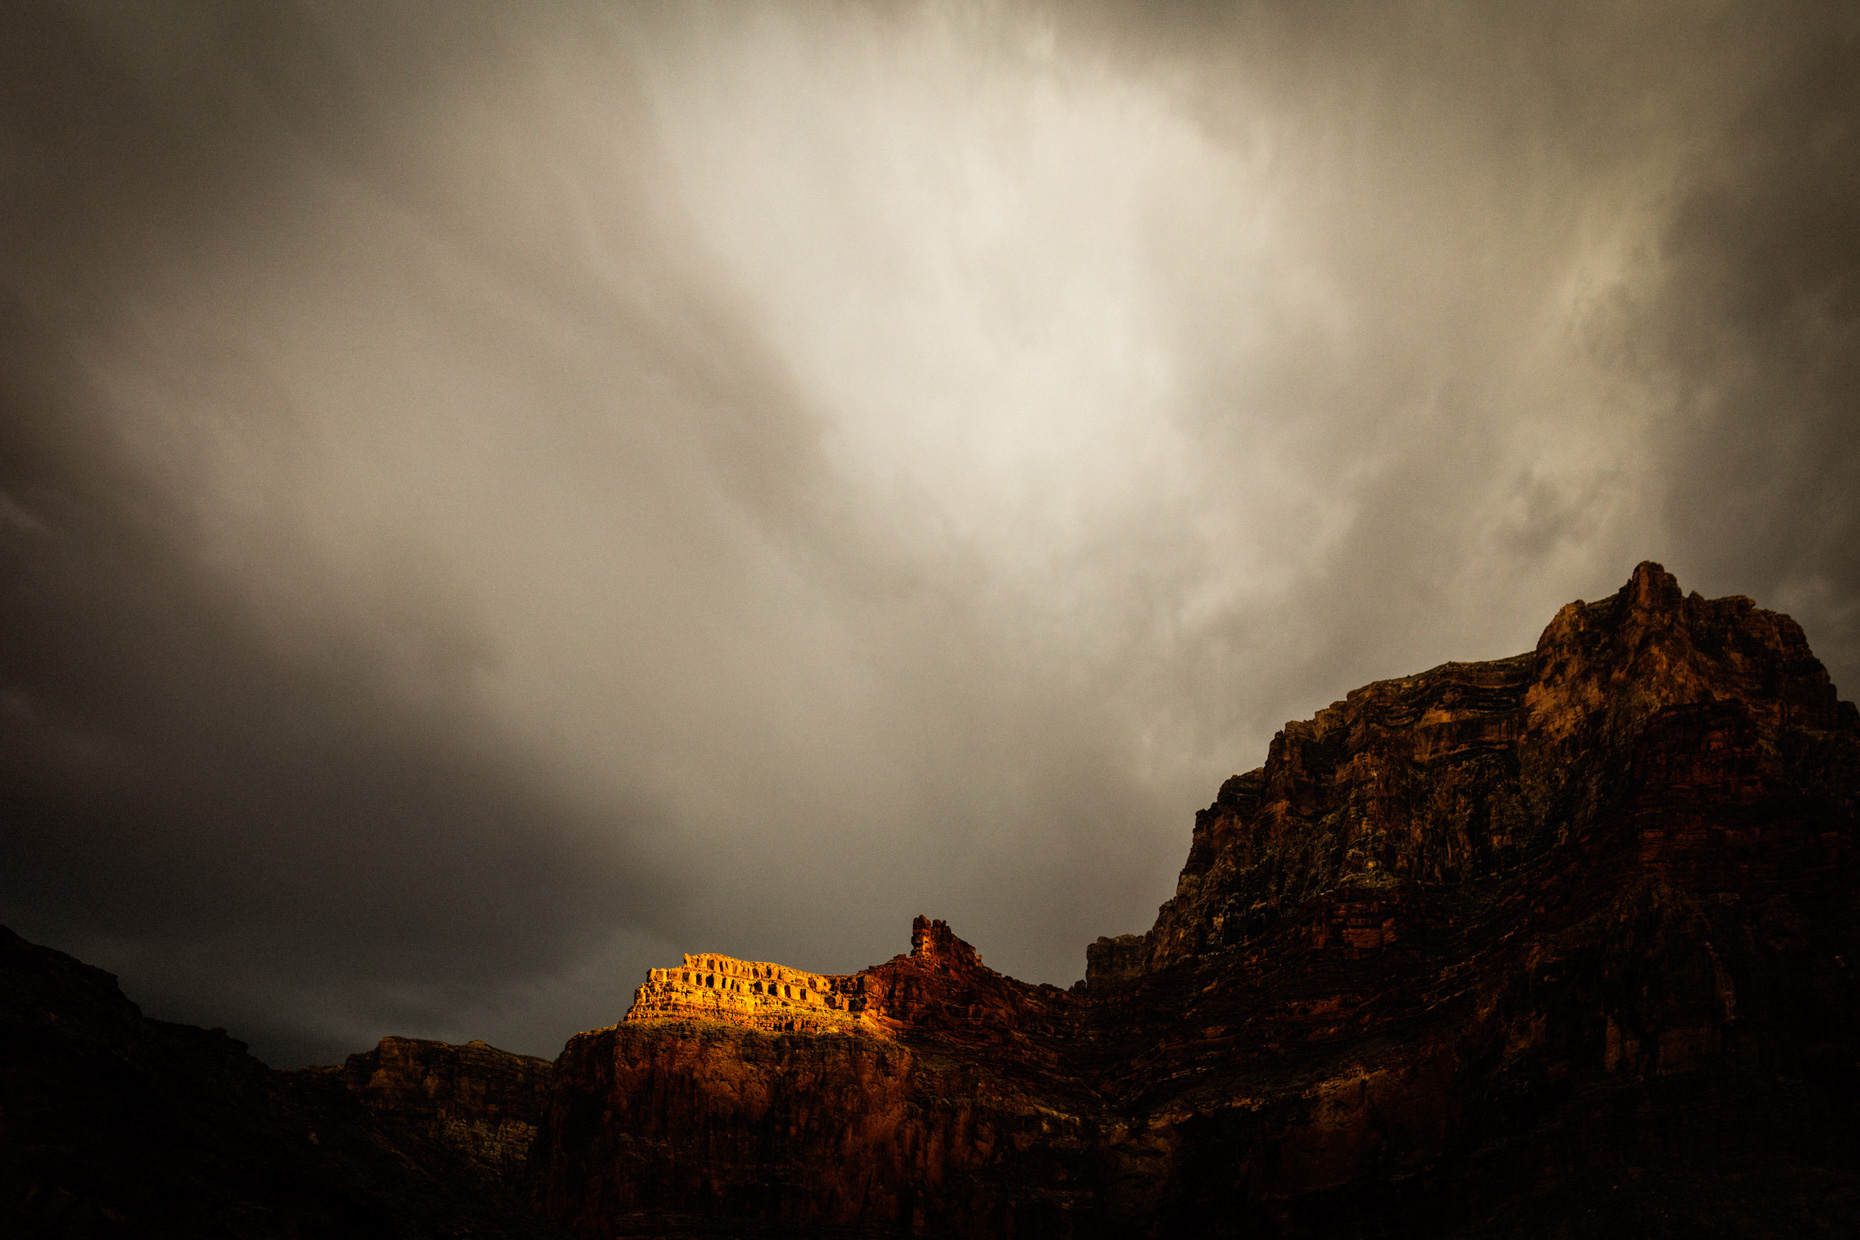 Grand Canyon White Water River Trip on Colorado River as a storm moved in.